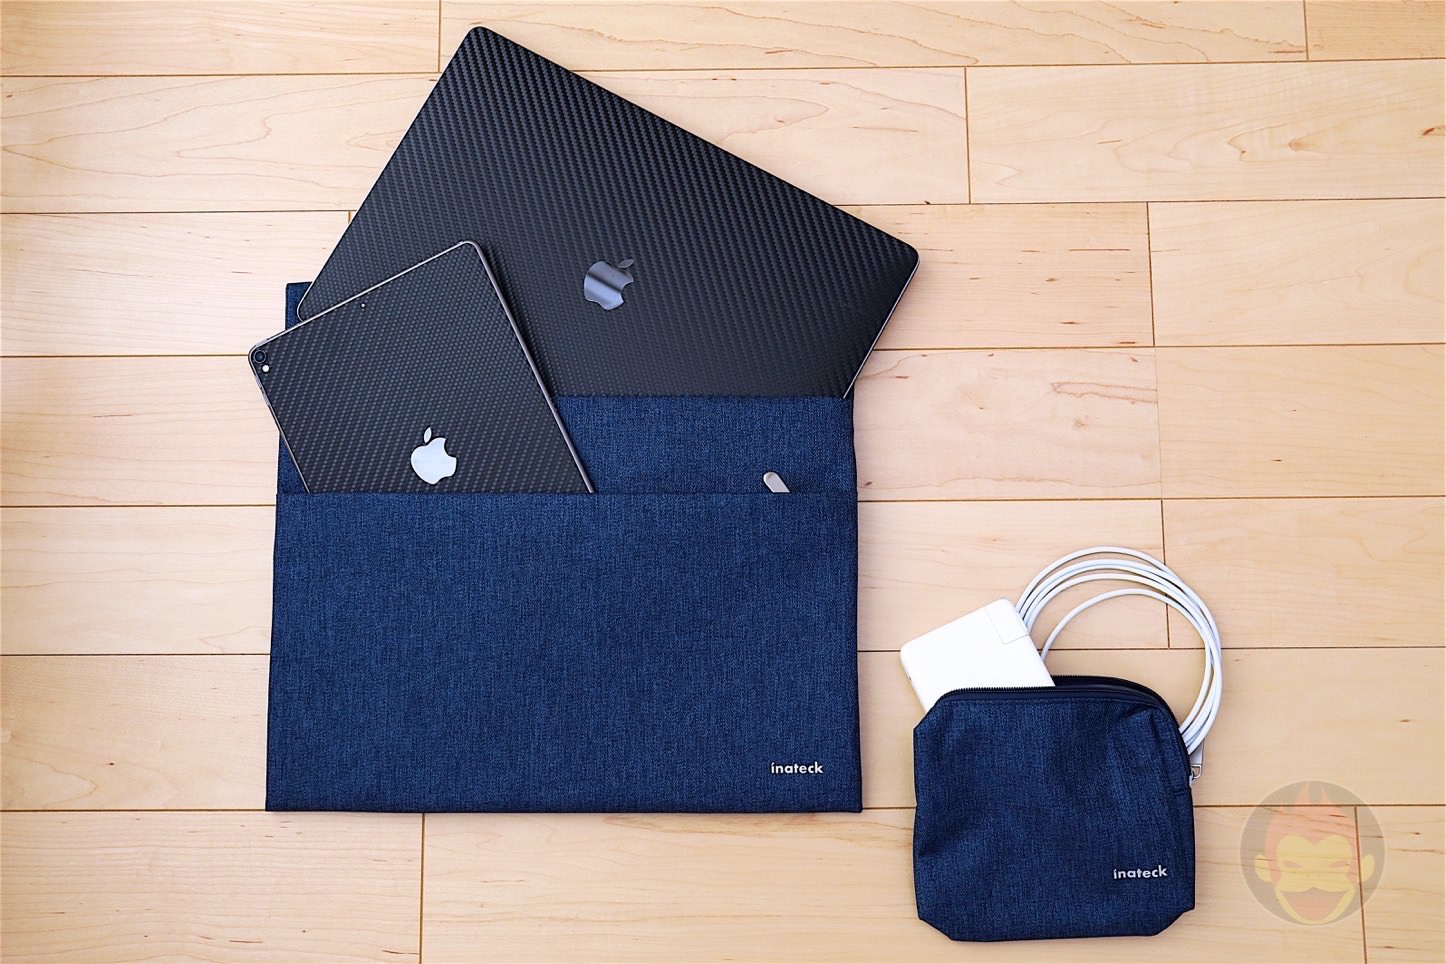 Inateck MacBookPro15 ケース レビュー